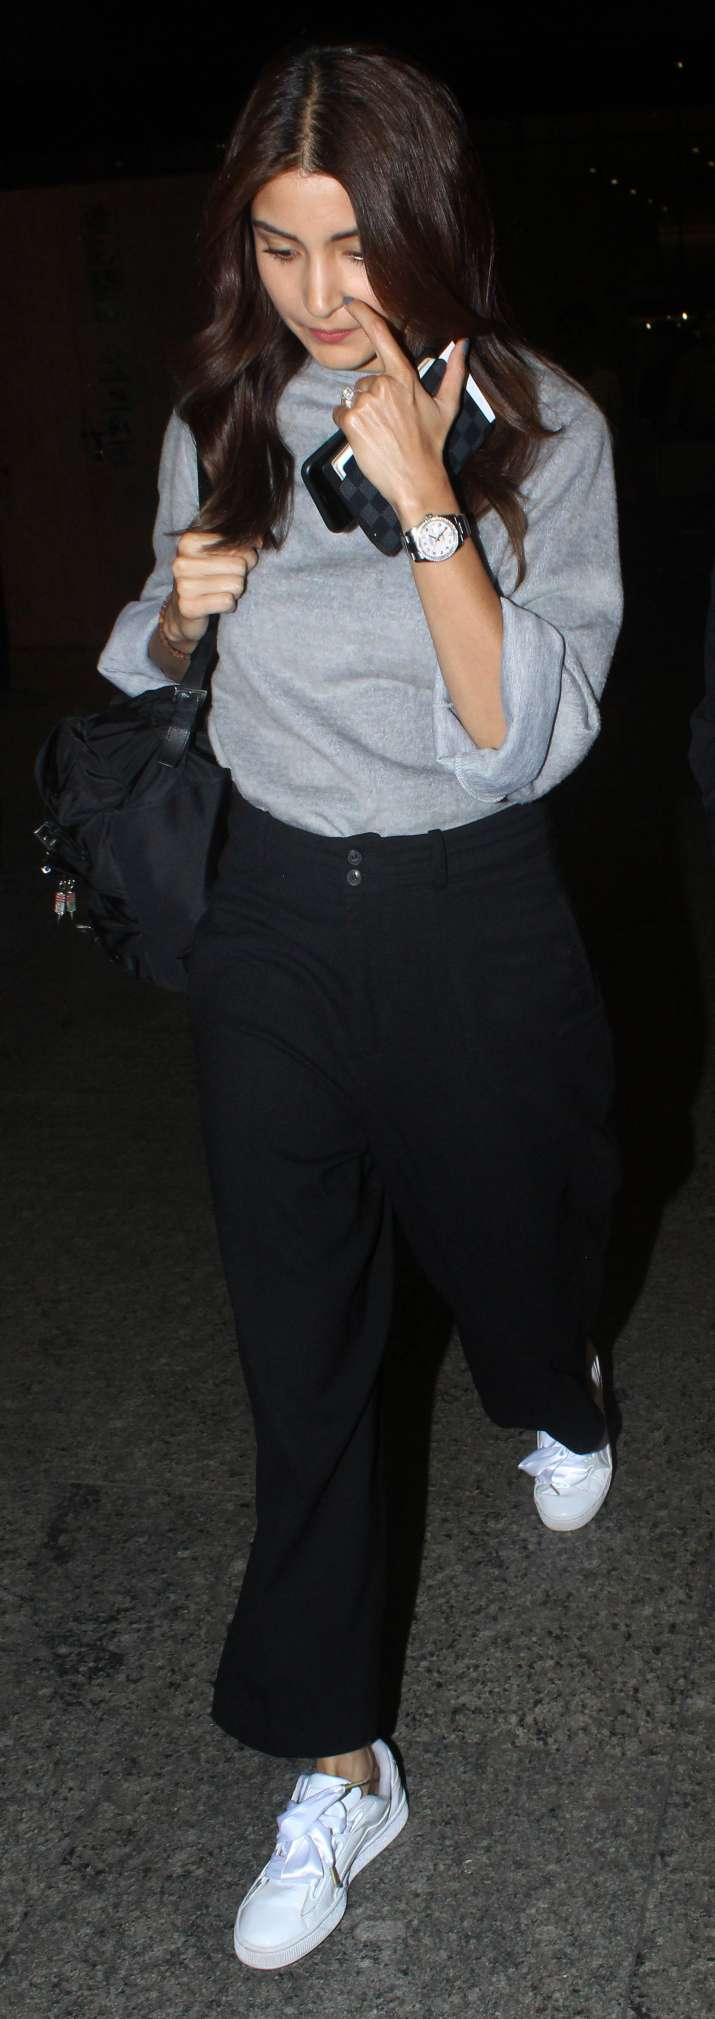 India Tv - She completed her airport look with a pair of white sneakers. Just like usual, she was wearing minimal makeup.